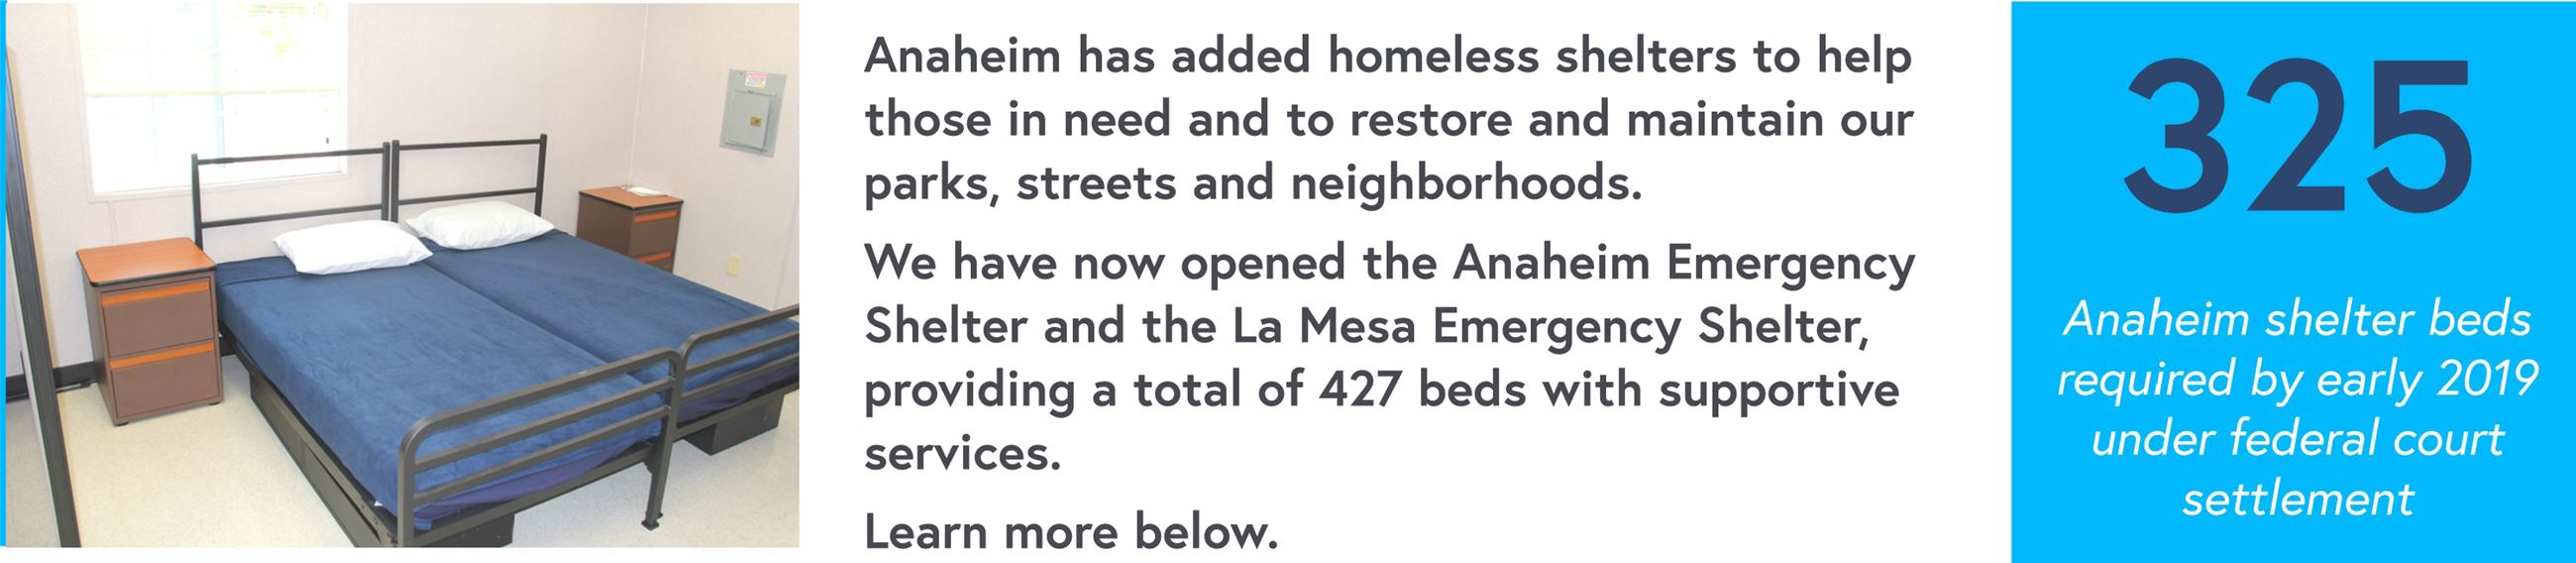 anaheim shelter plan header july 2020